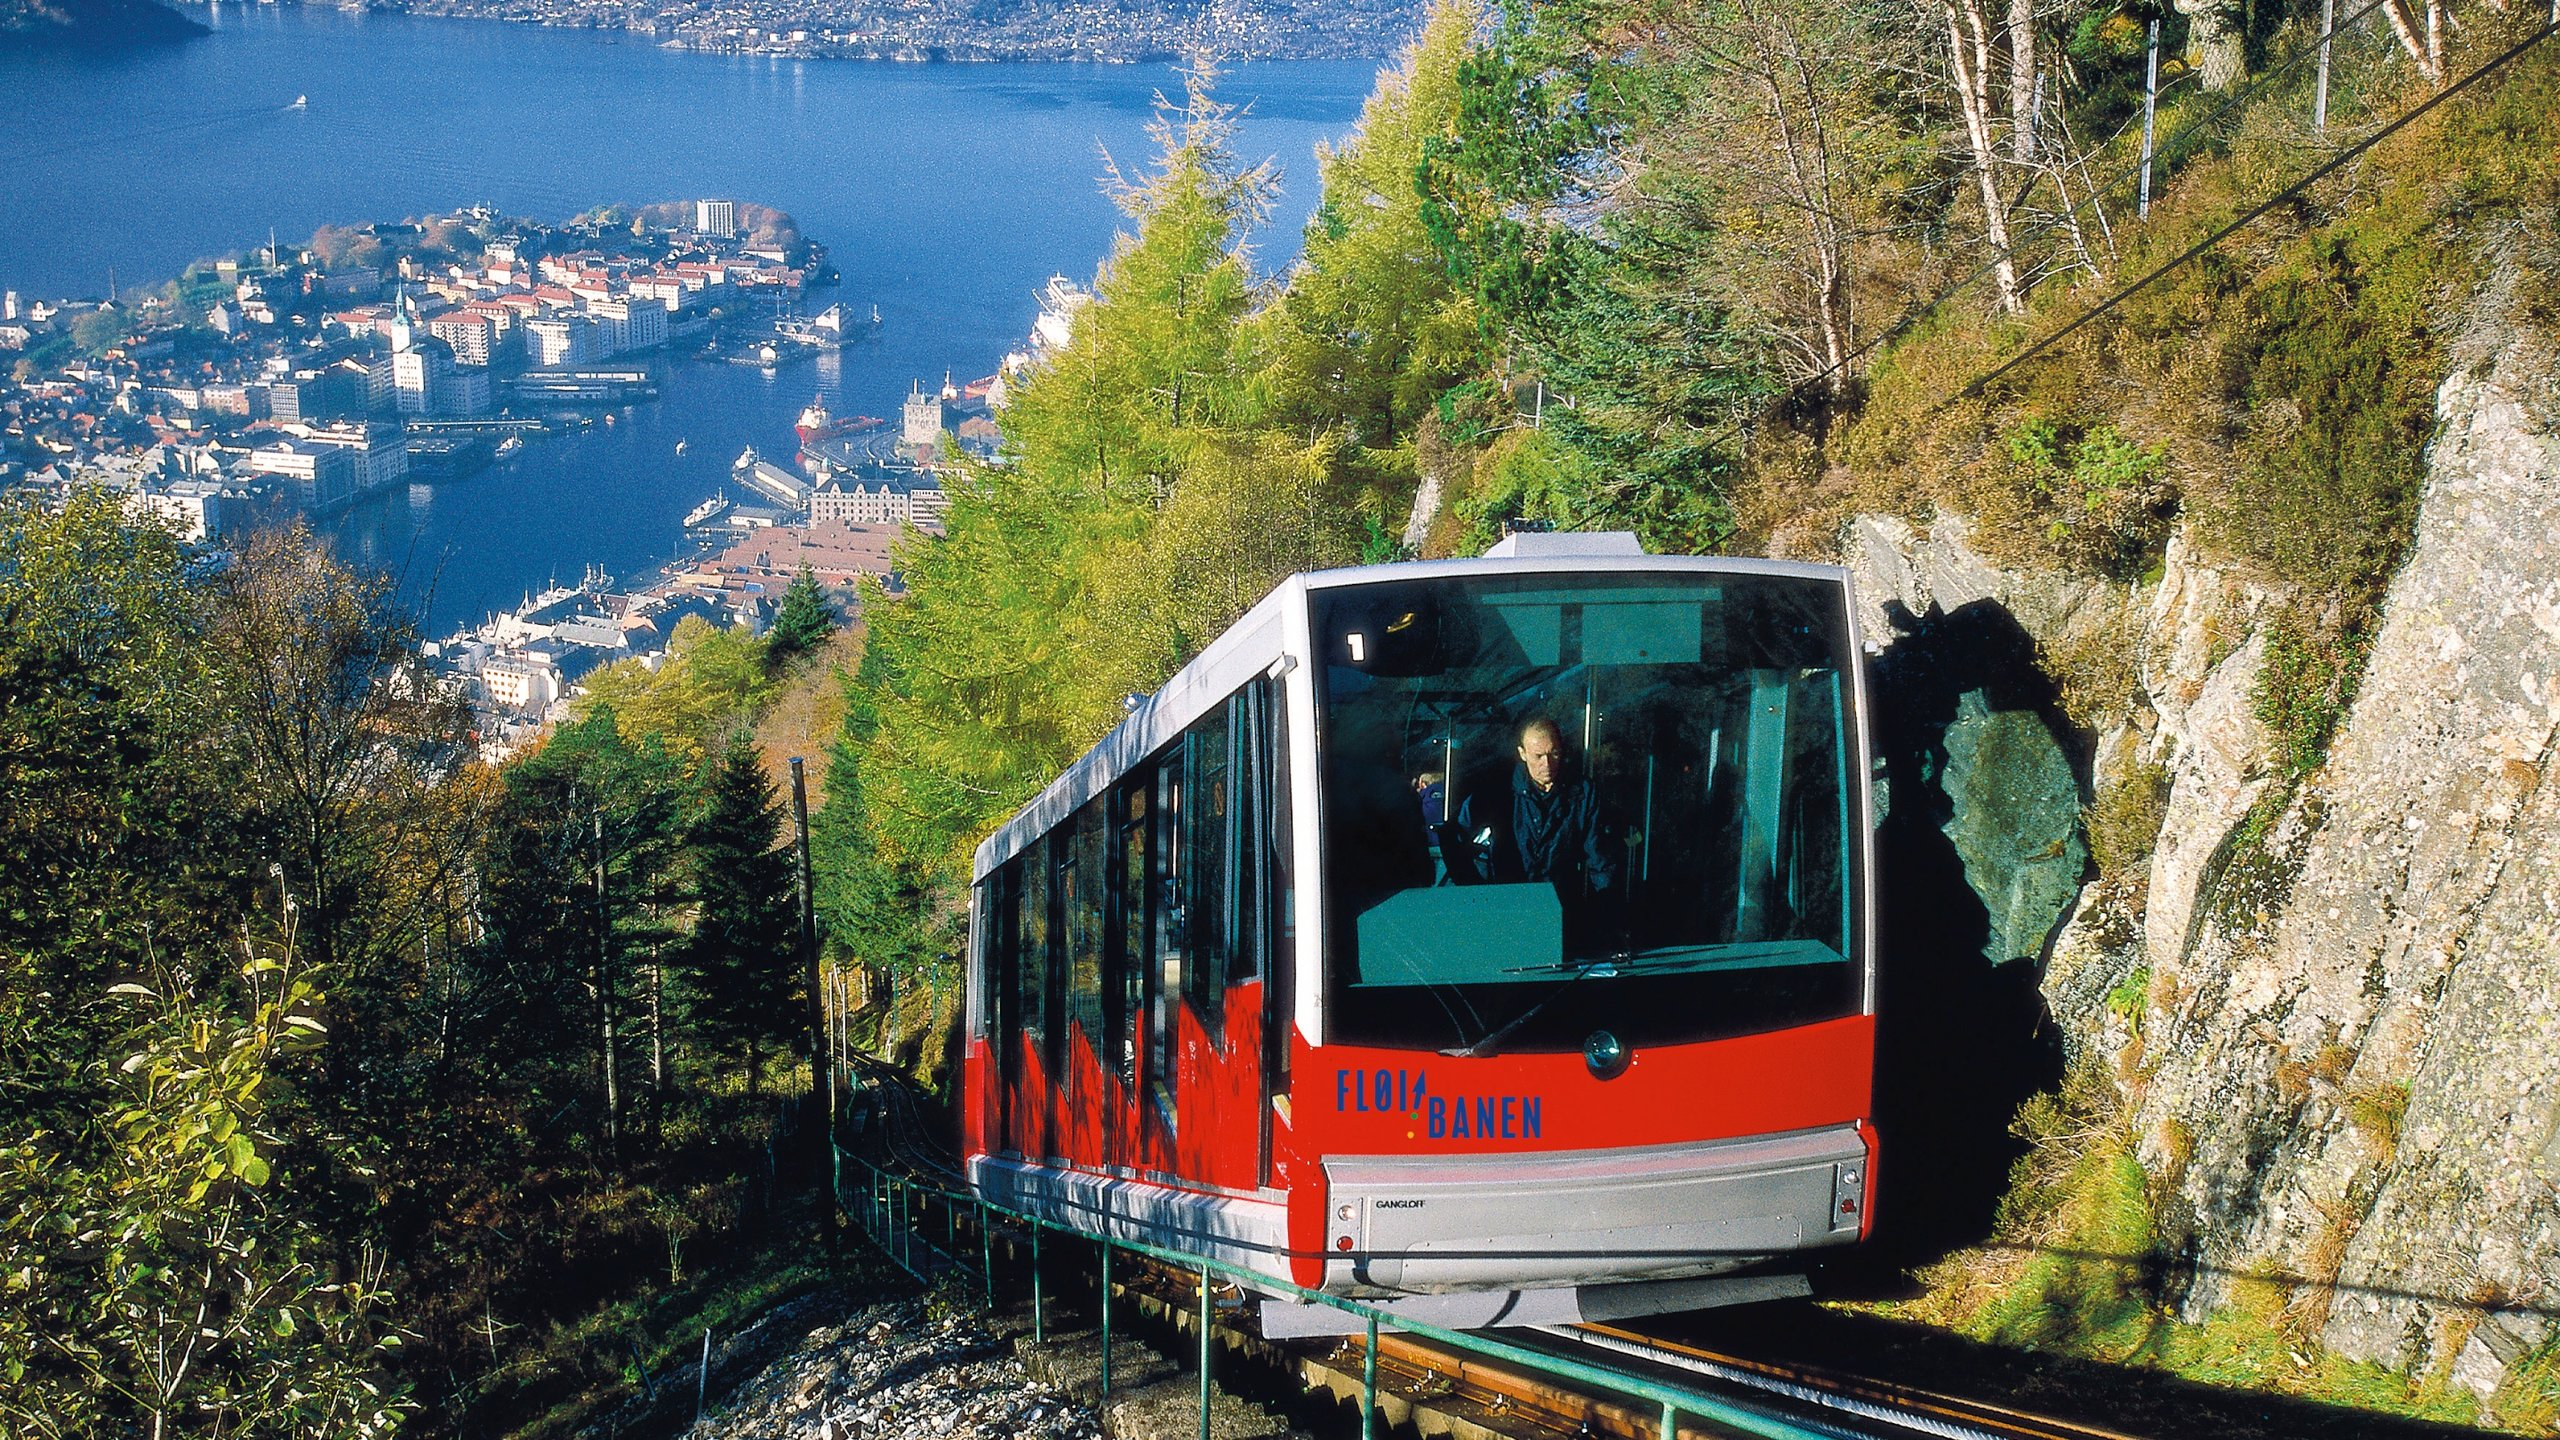 Ride the cable car from the center of Bergen to the top of Mount Fløyen for incredible views across the fjords and access to picturesque hiking trails.